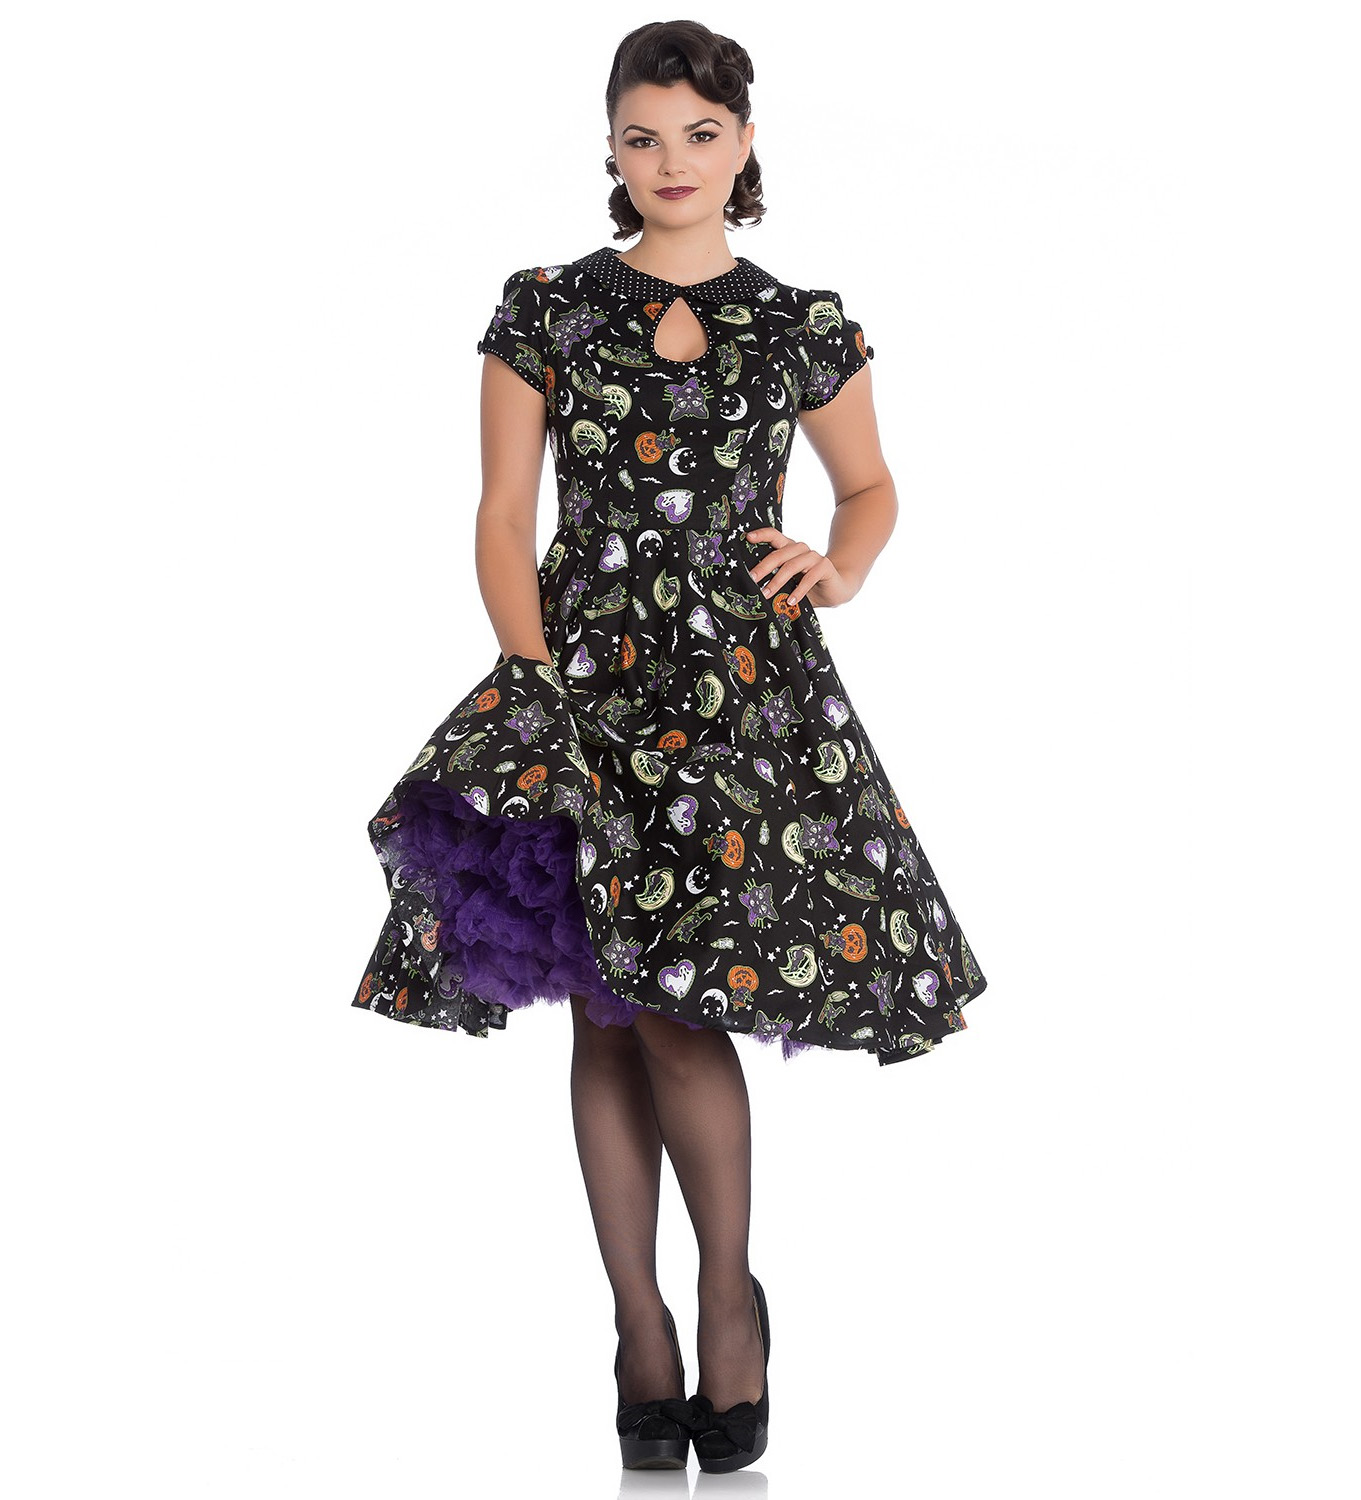 Hell-Bunny-50s-Black-Pin-Up-Dress-Horror-Witchy-SALEM-Halloween-All-Sizes thumbnail 35